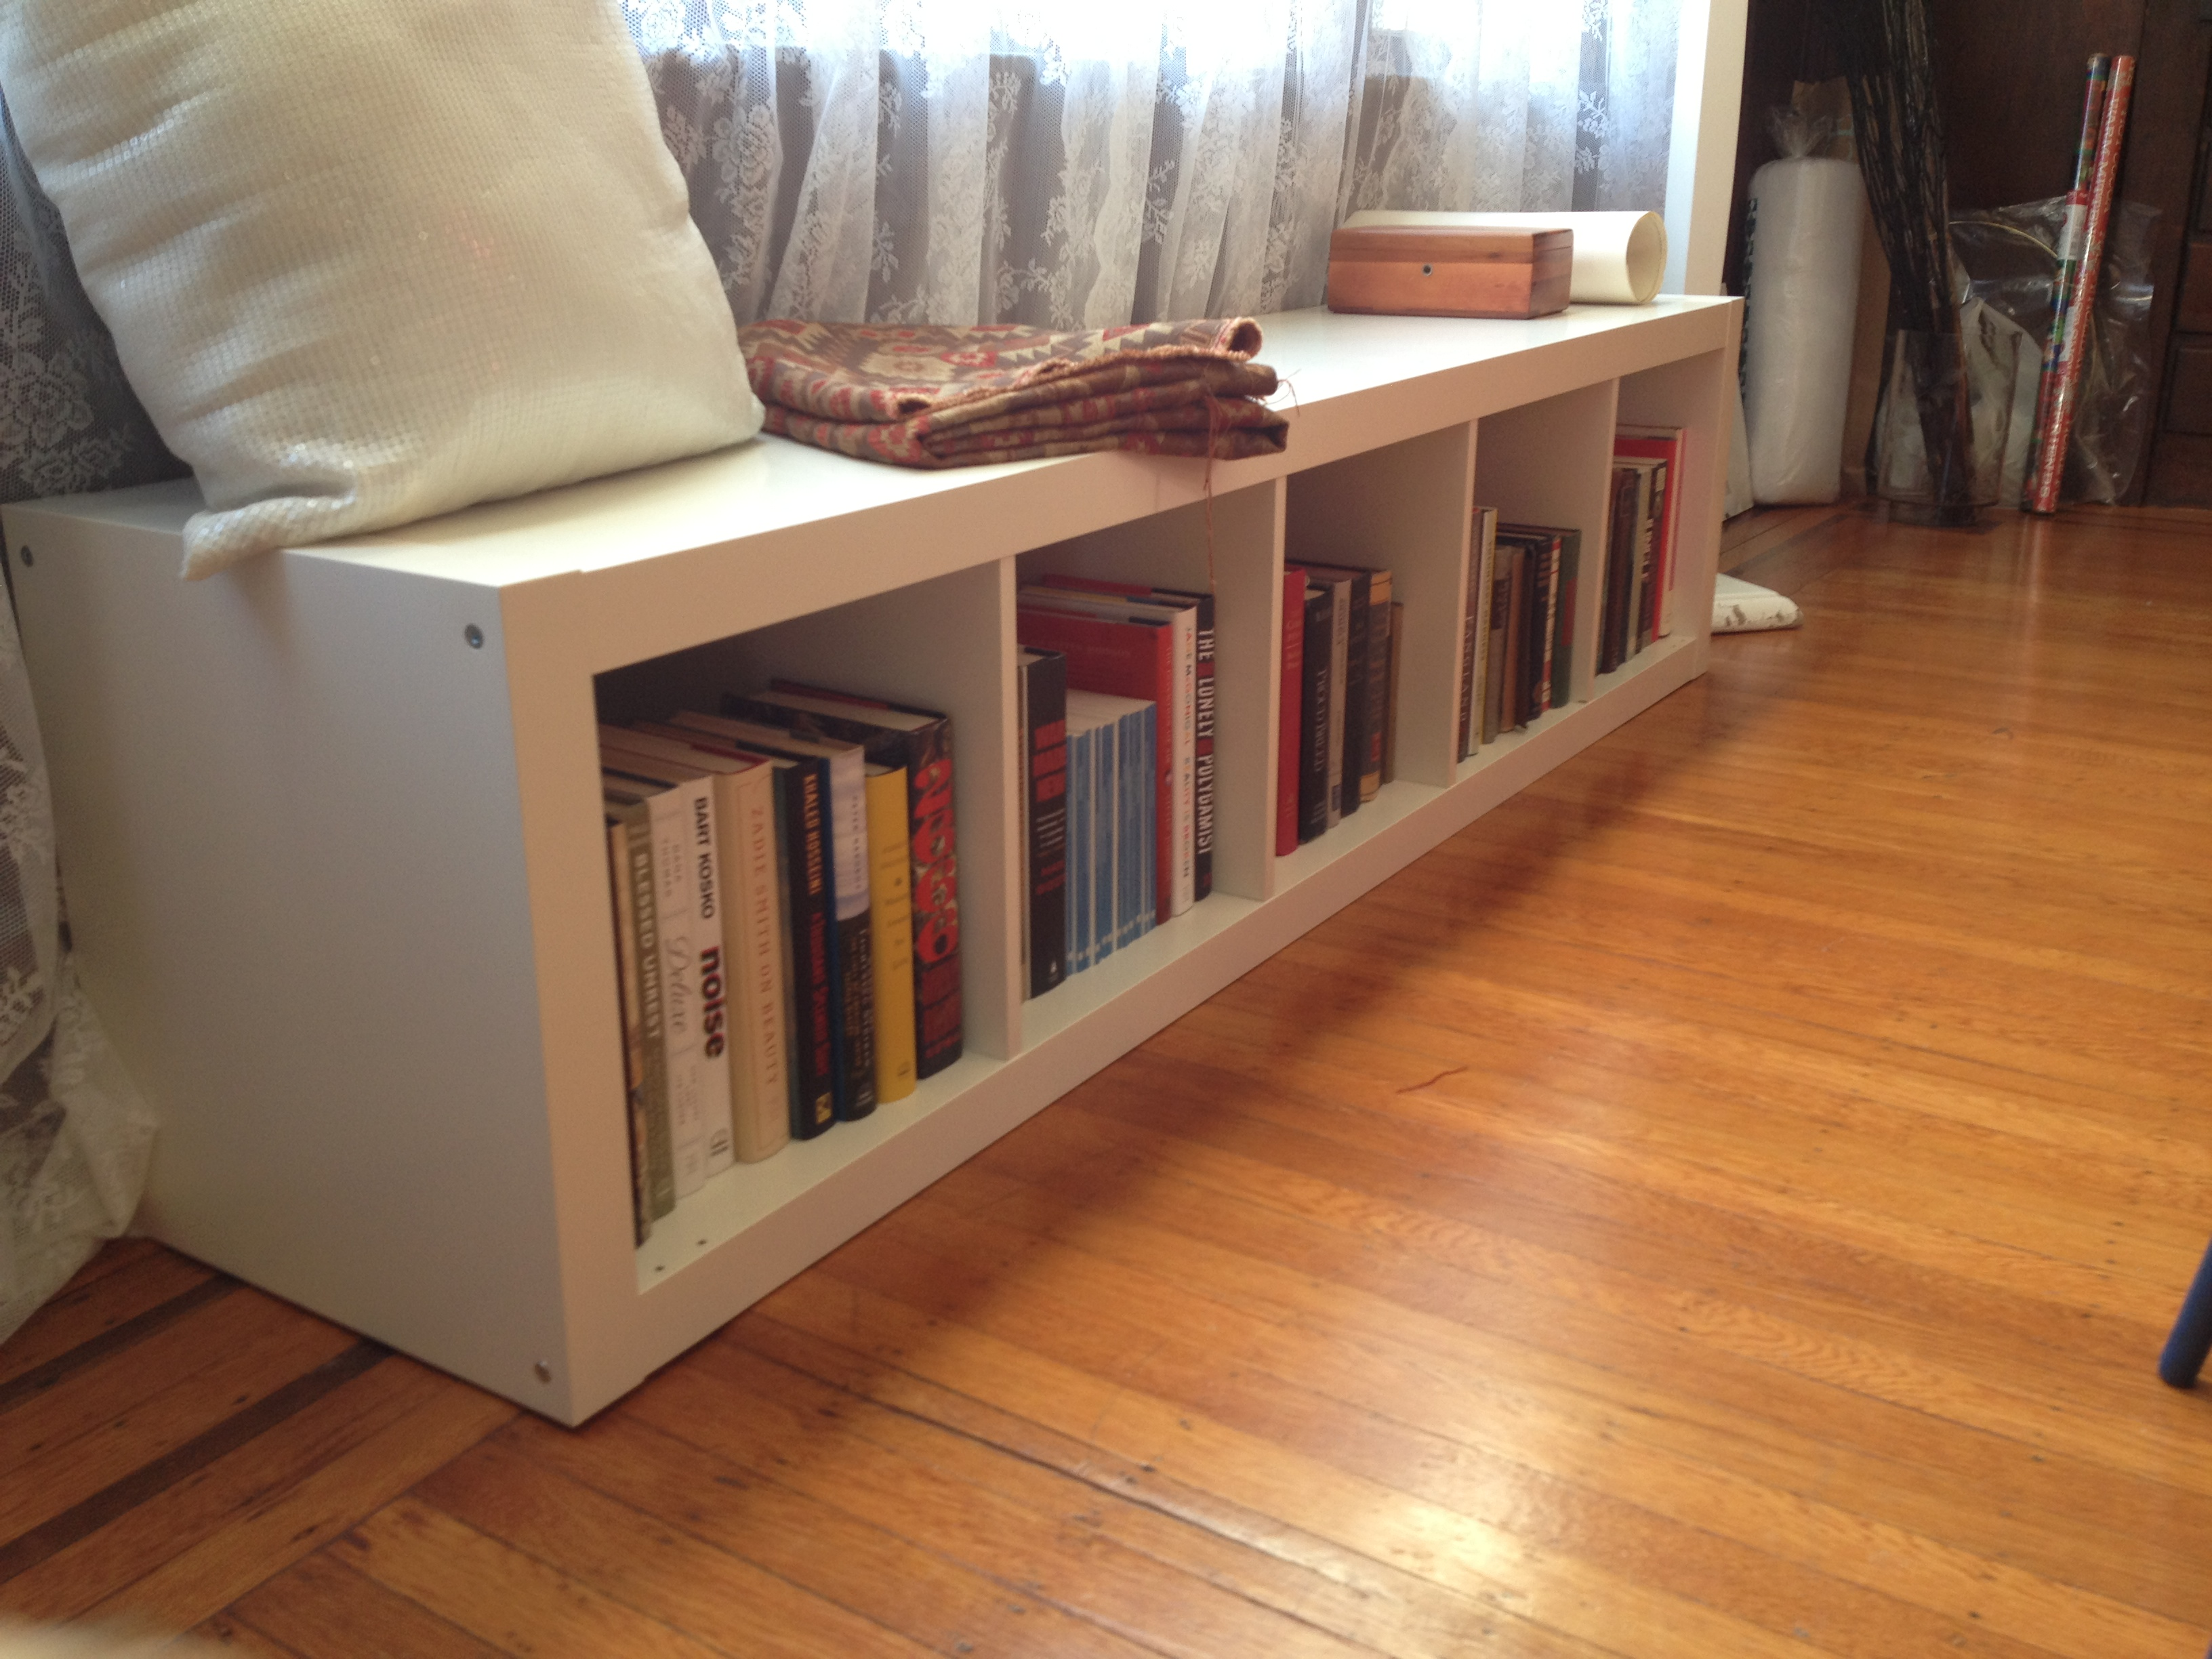 Ikea Expedit Bookcase In Cream Filled With Books On Wooden Floor Plus White  Cushion And White